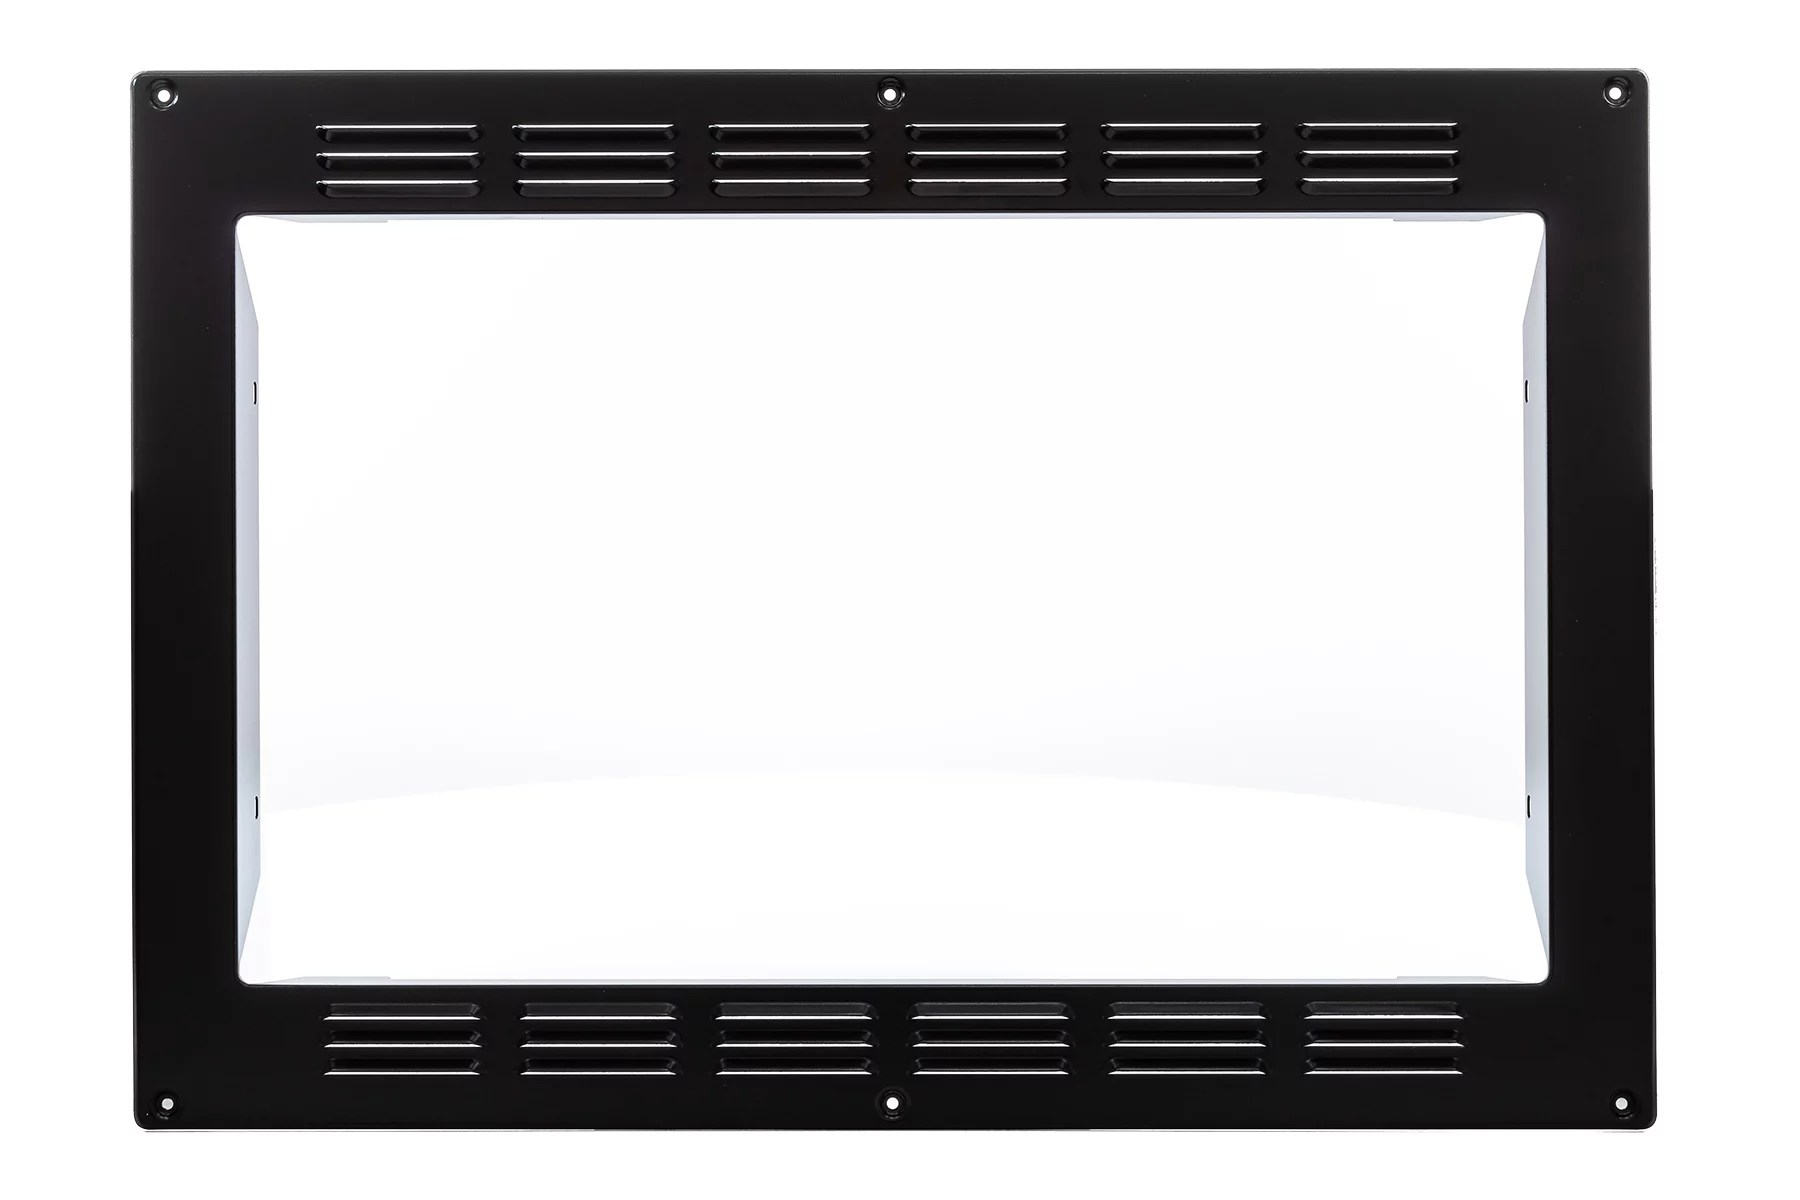 patrick industries kitb2801b microwave oven trim kit high pointe use with convection microwave oven part number ec028bmr b black